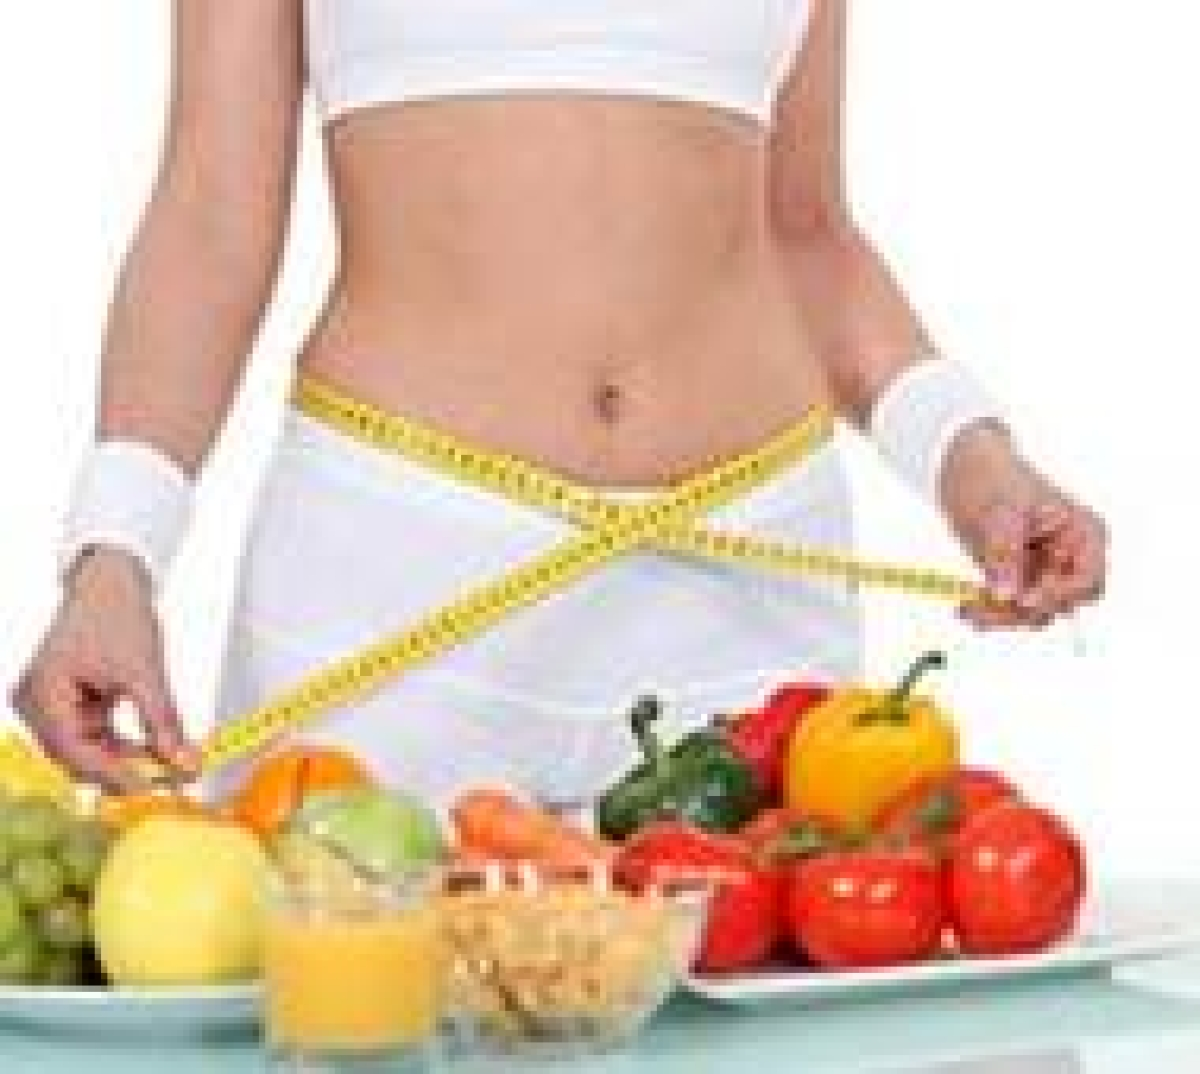 Weight loss with protein-rich diet linked to better sleep